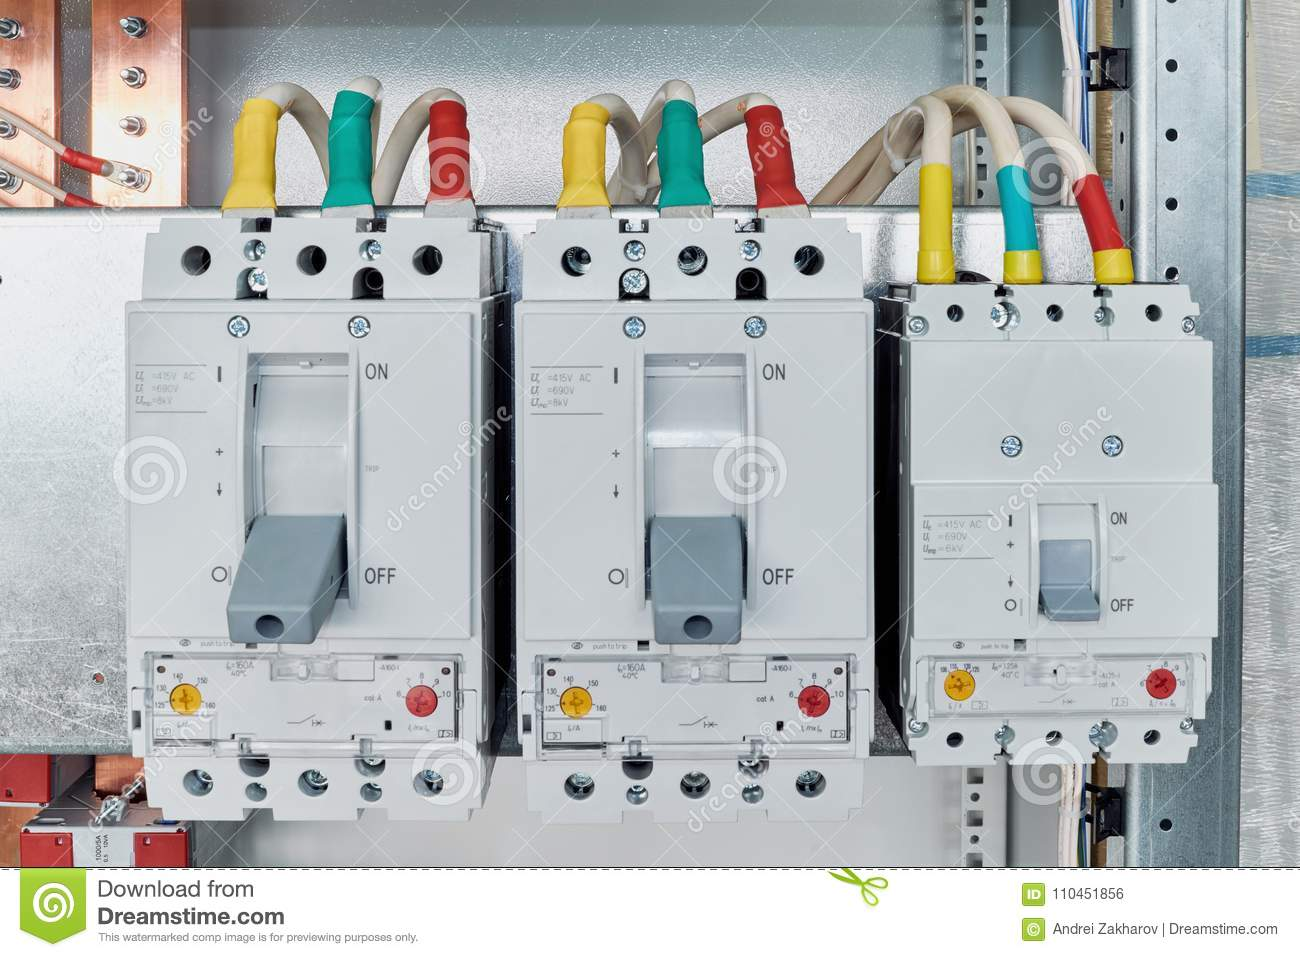 hight resolution of power circuit breakers are arranged in a row in an electric cabinet